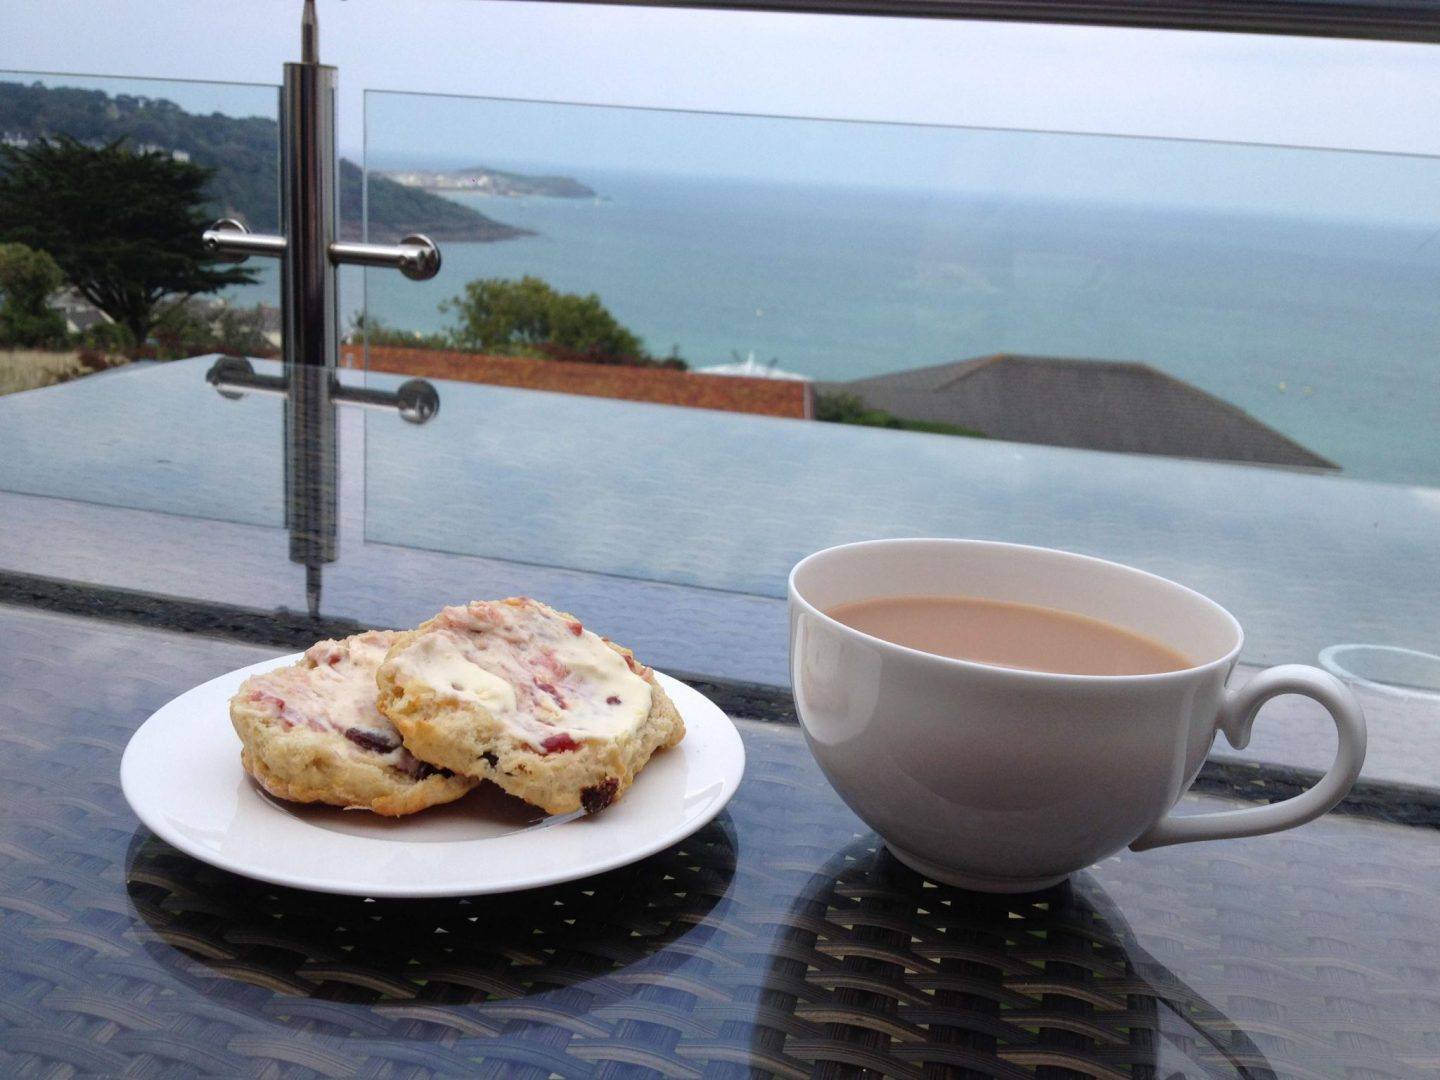 Cornish cream tea and scones with a view of St Ives, Cornwall